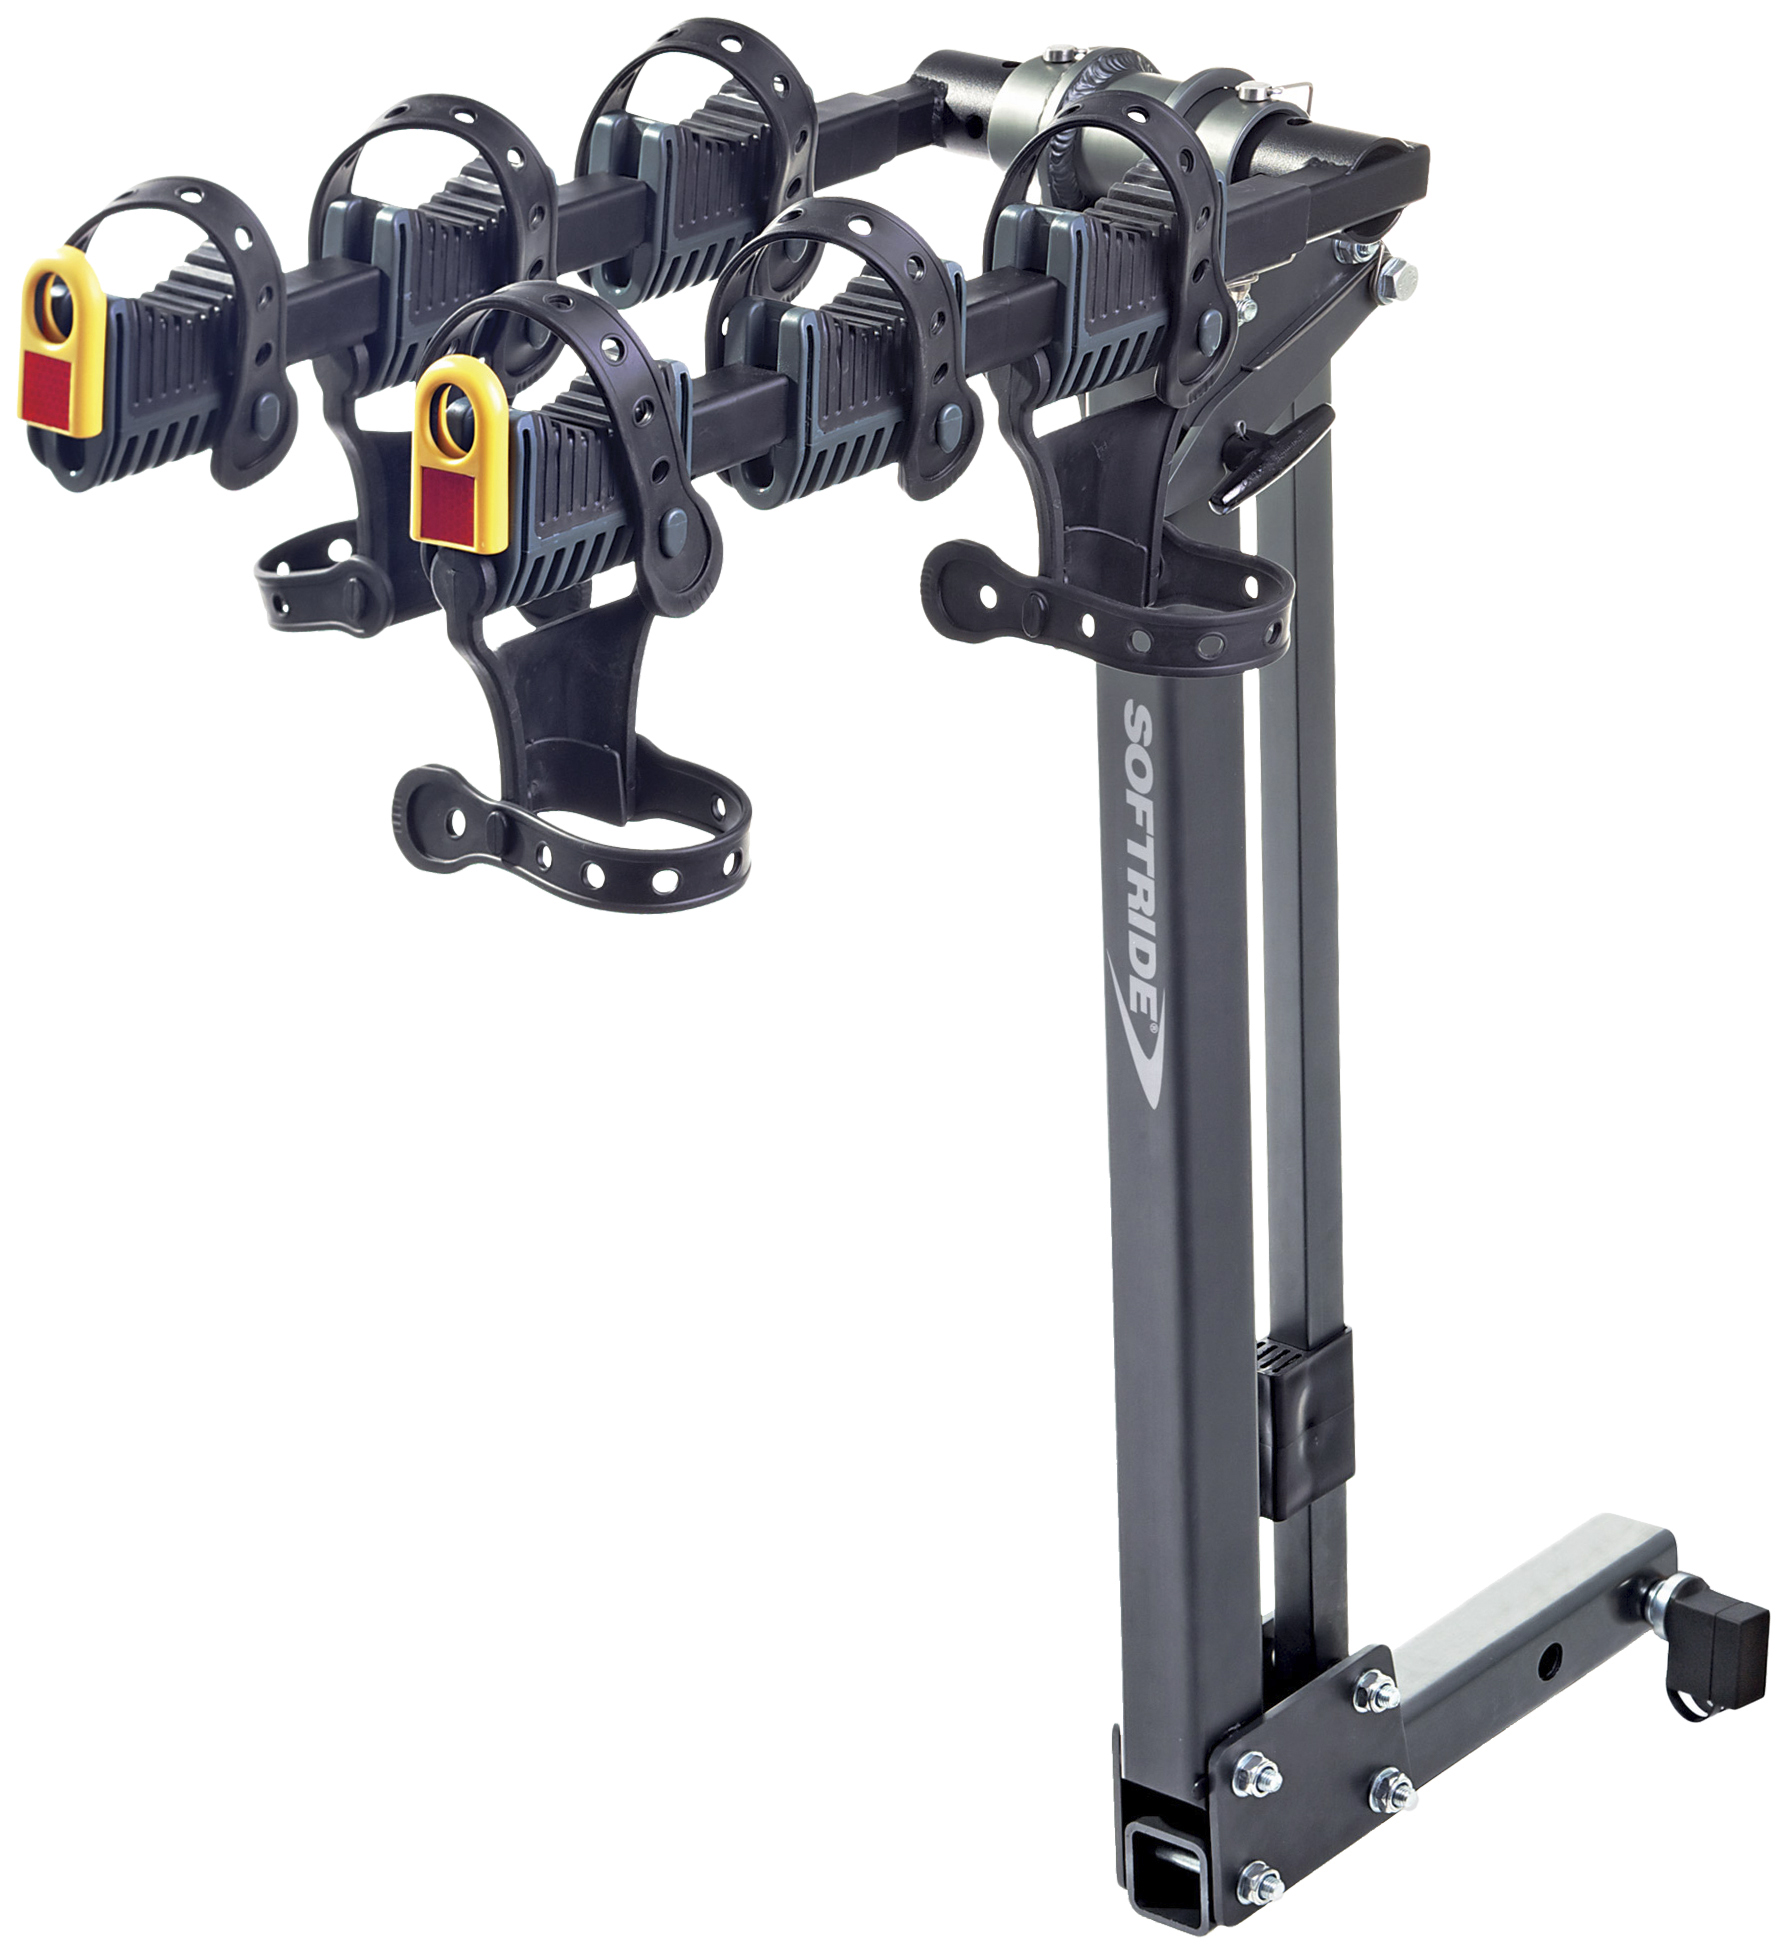 prodeco can installing fullswing hitch go supercharging tesla model you a bike once x rack camping